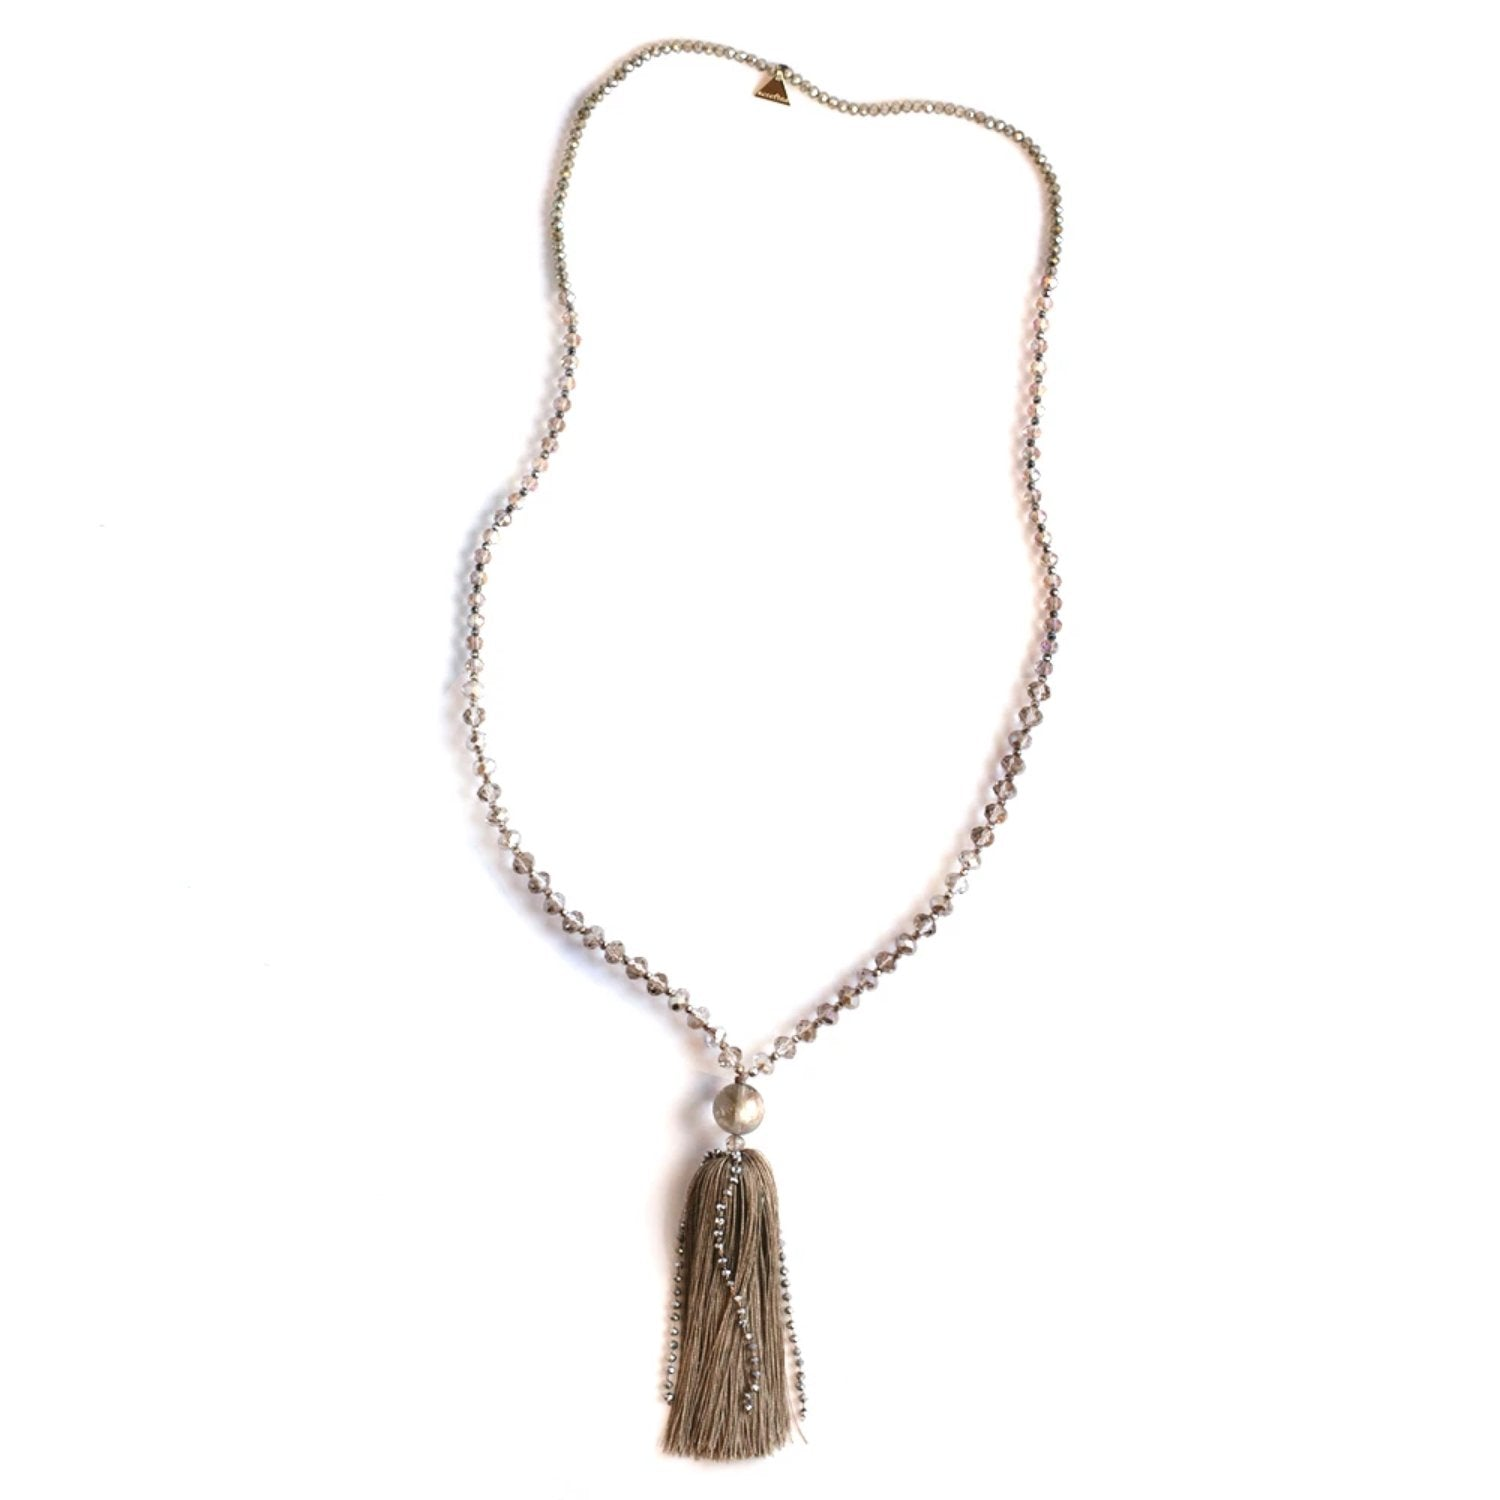 Crystal Tassel Necklace - Smokey